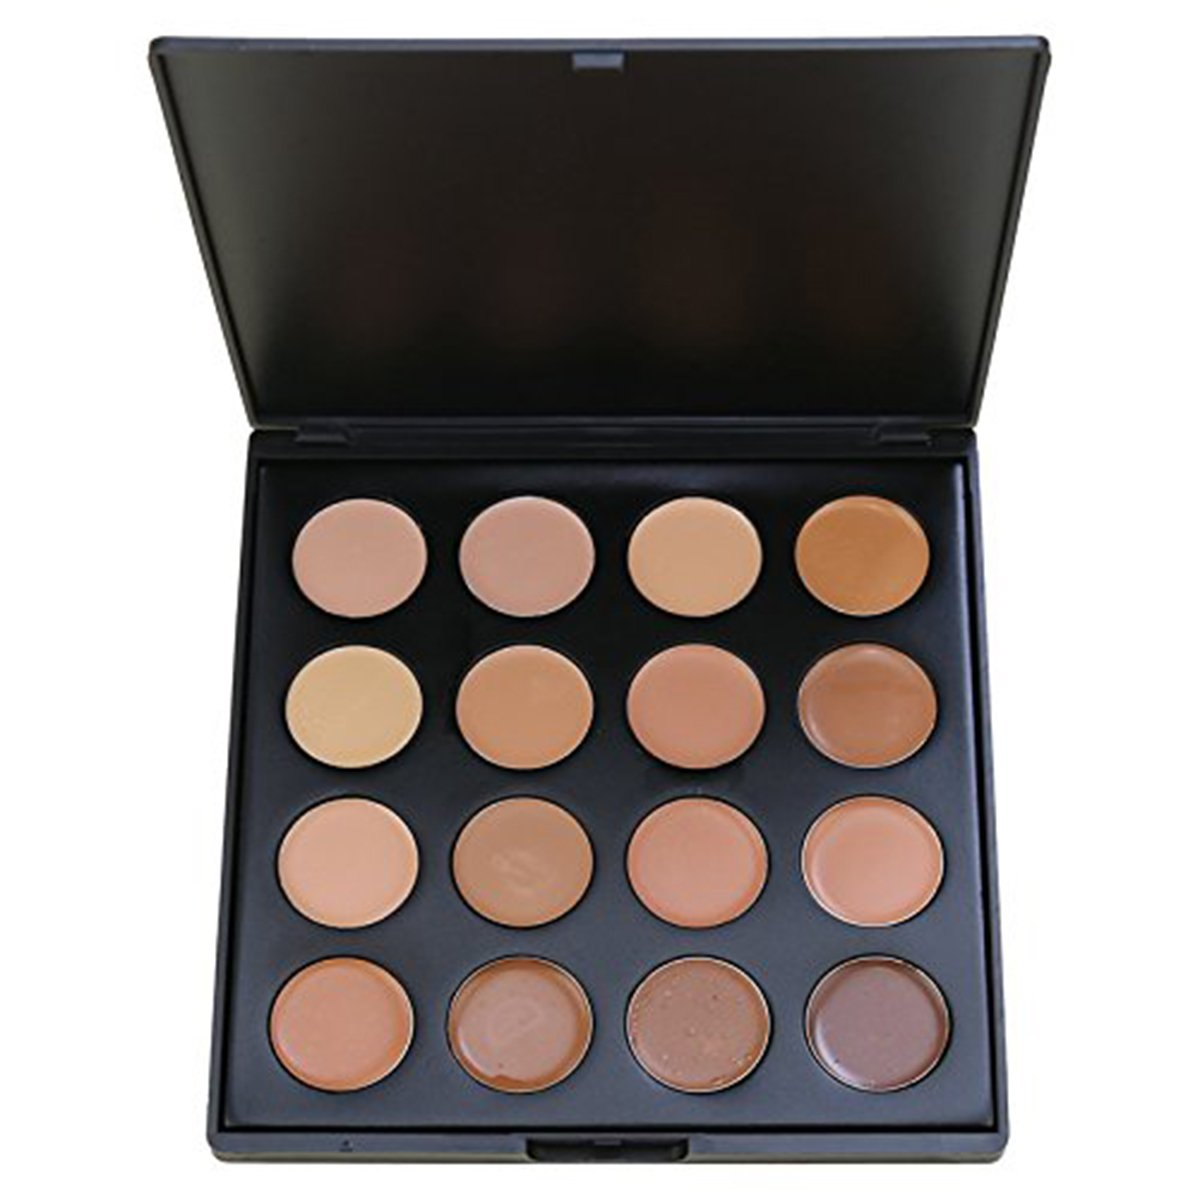 Face Base Foundation Palette, Vodisa 16 Color Natural Contouring Highlighter Kit Makeup Set, Cheek Foundation Makeup Blemish Pallet Beauty Cosmetics Make Up Bronze Contouring and Highlighting Pallet